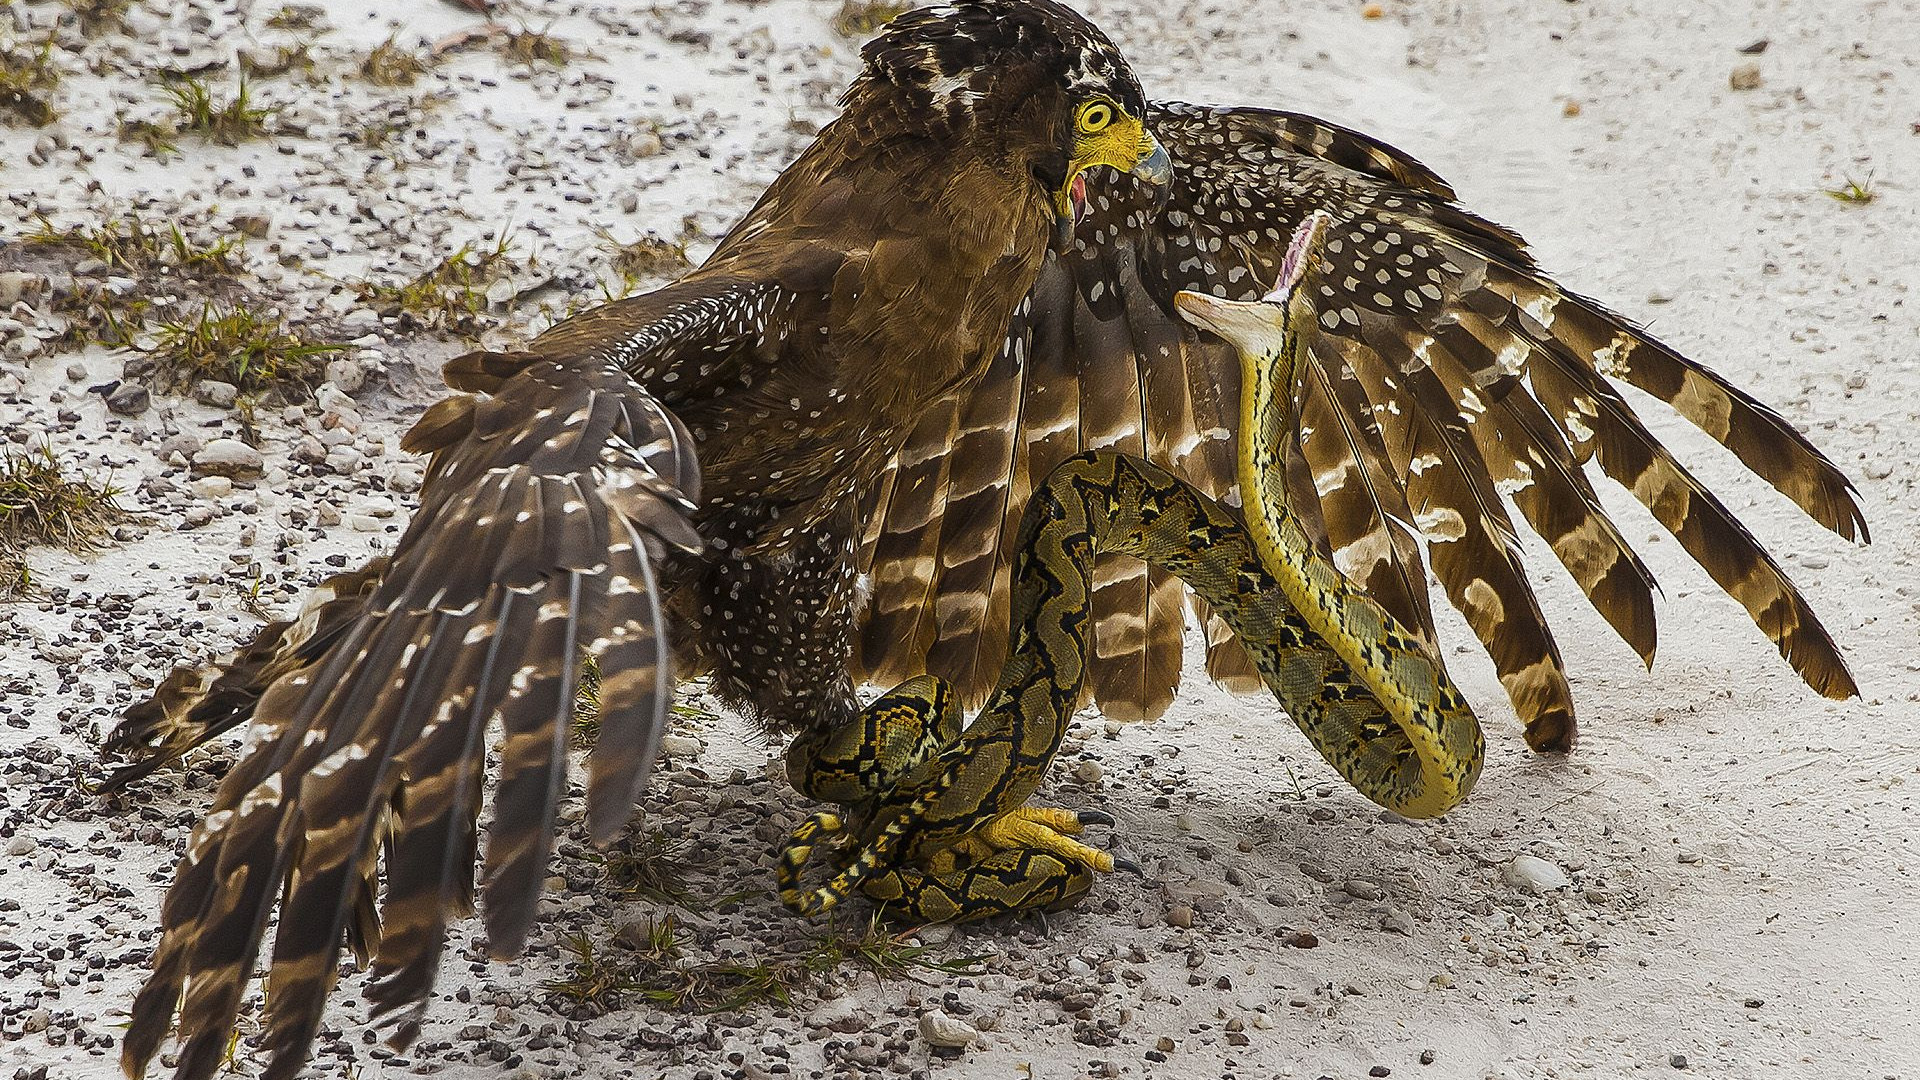 Snake and Eagle fighting in Borneo, Malaysia